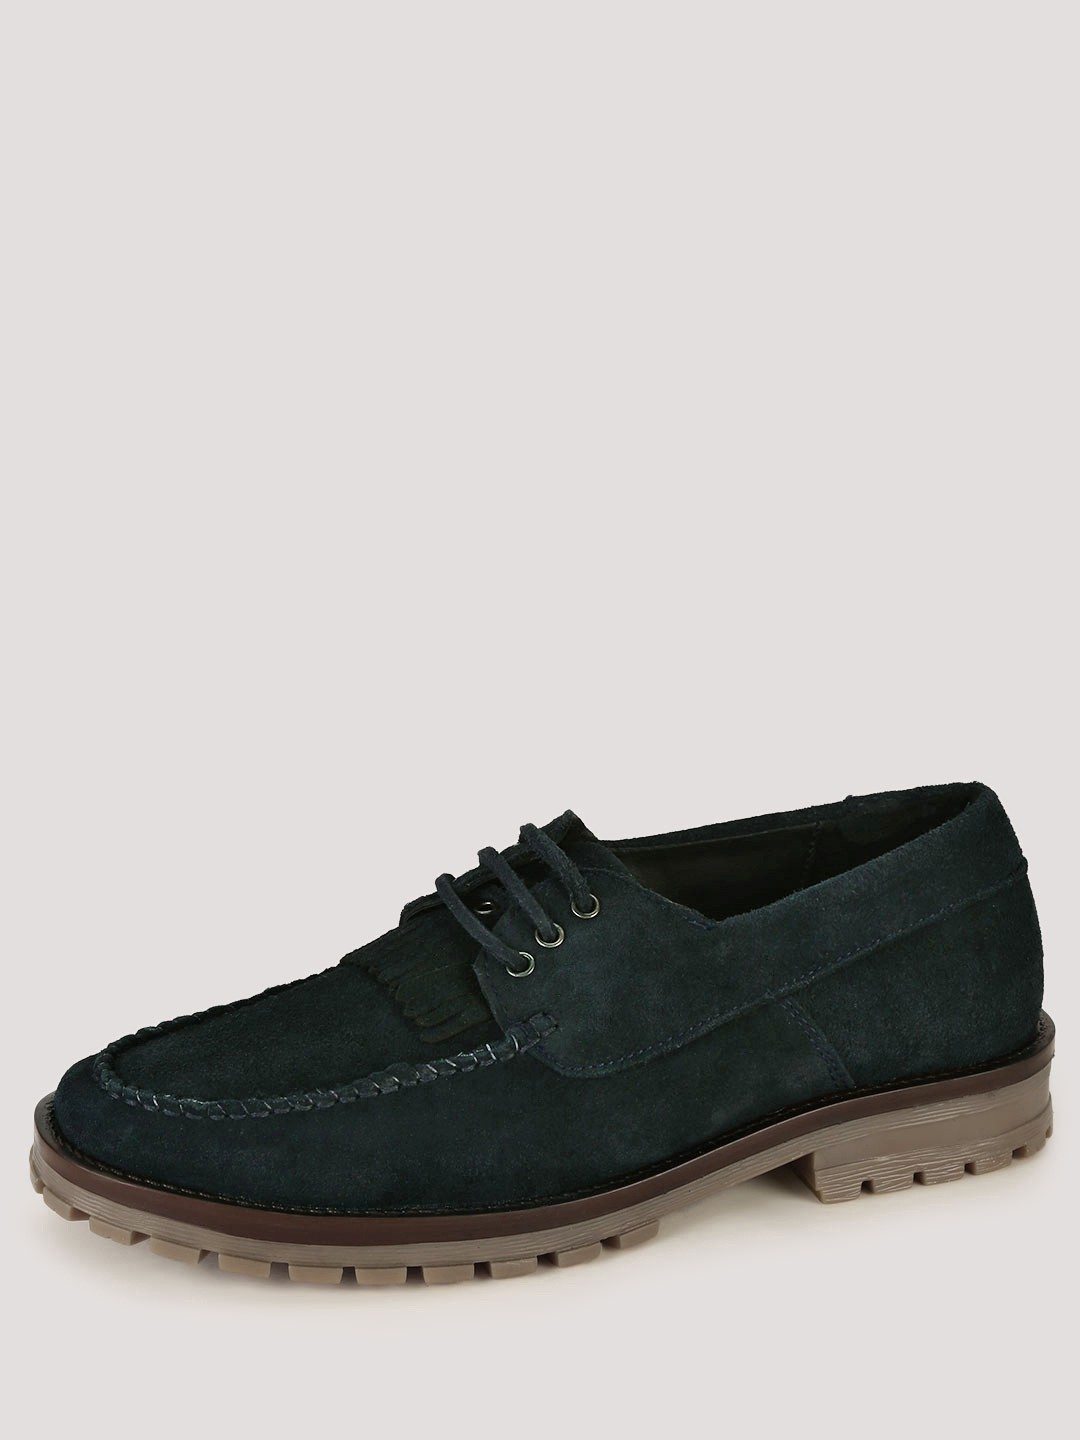 Buy Creepers Shoes Online India